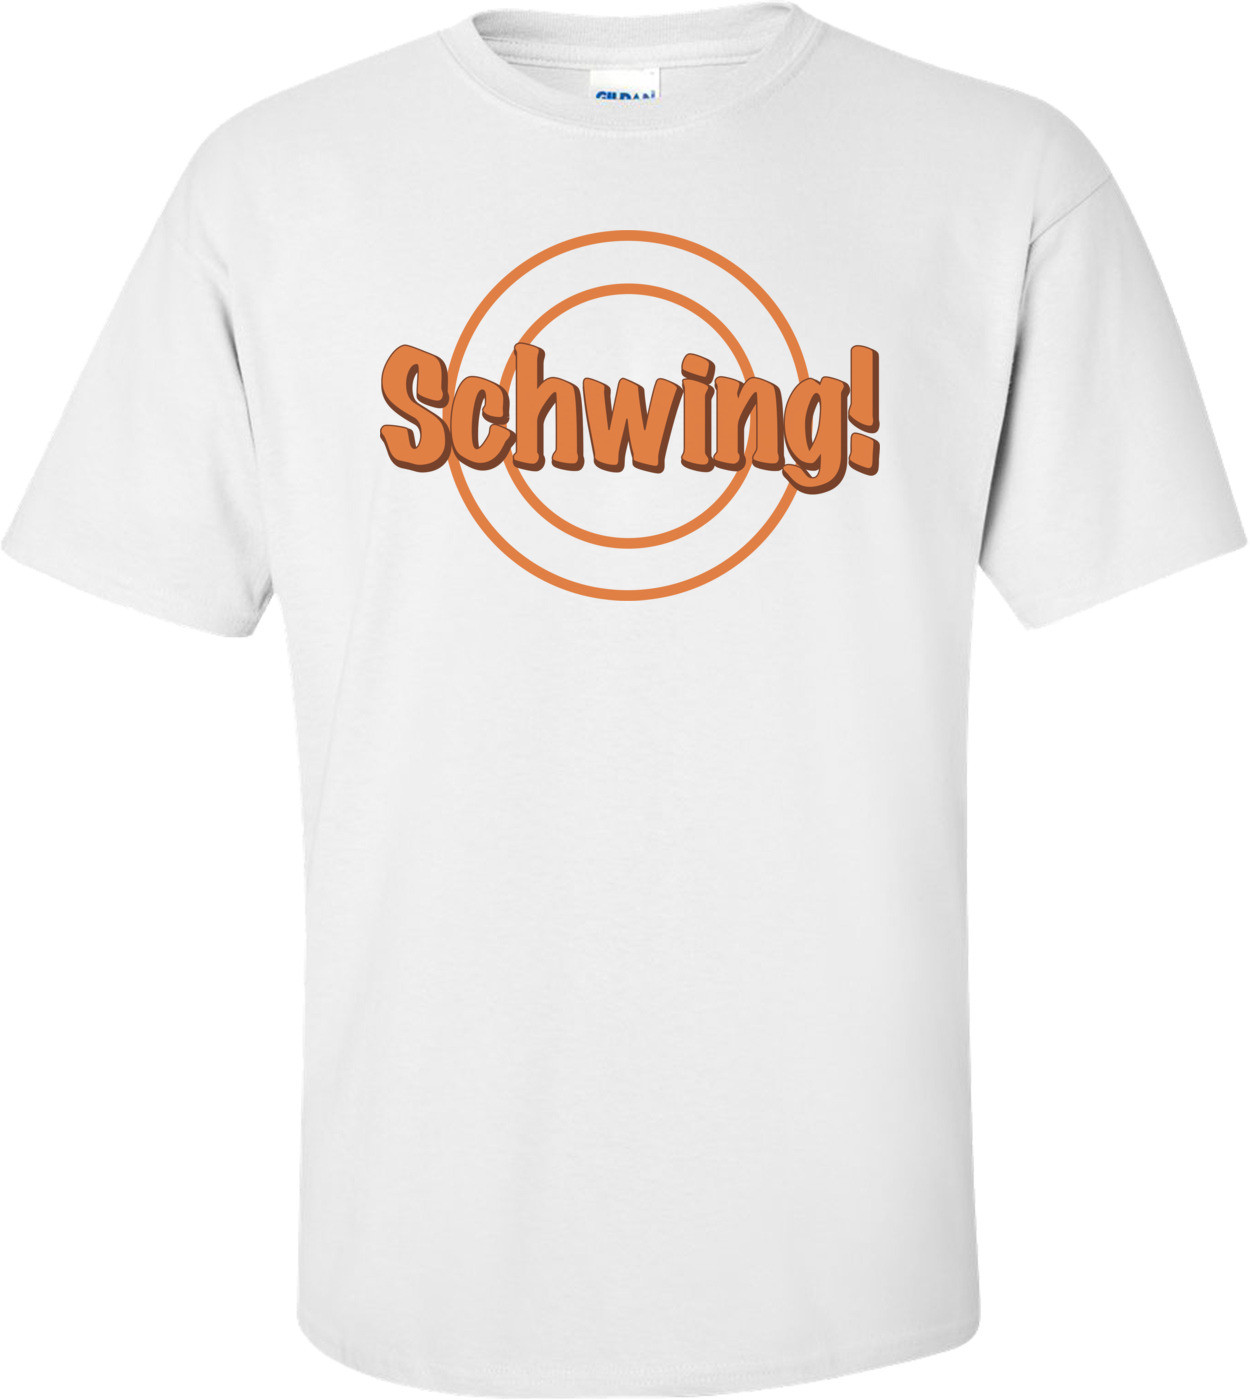 Schwing Wayne's World T-shirt